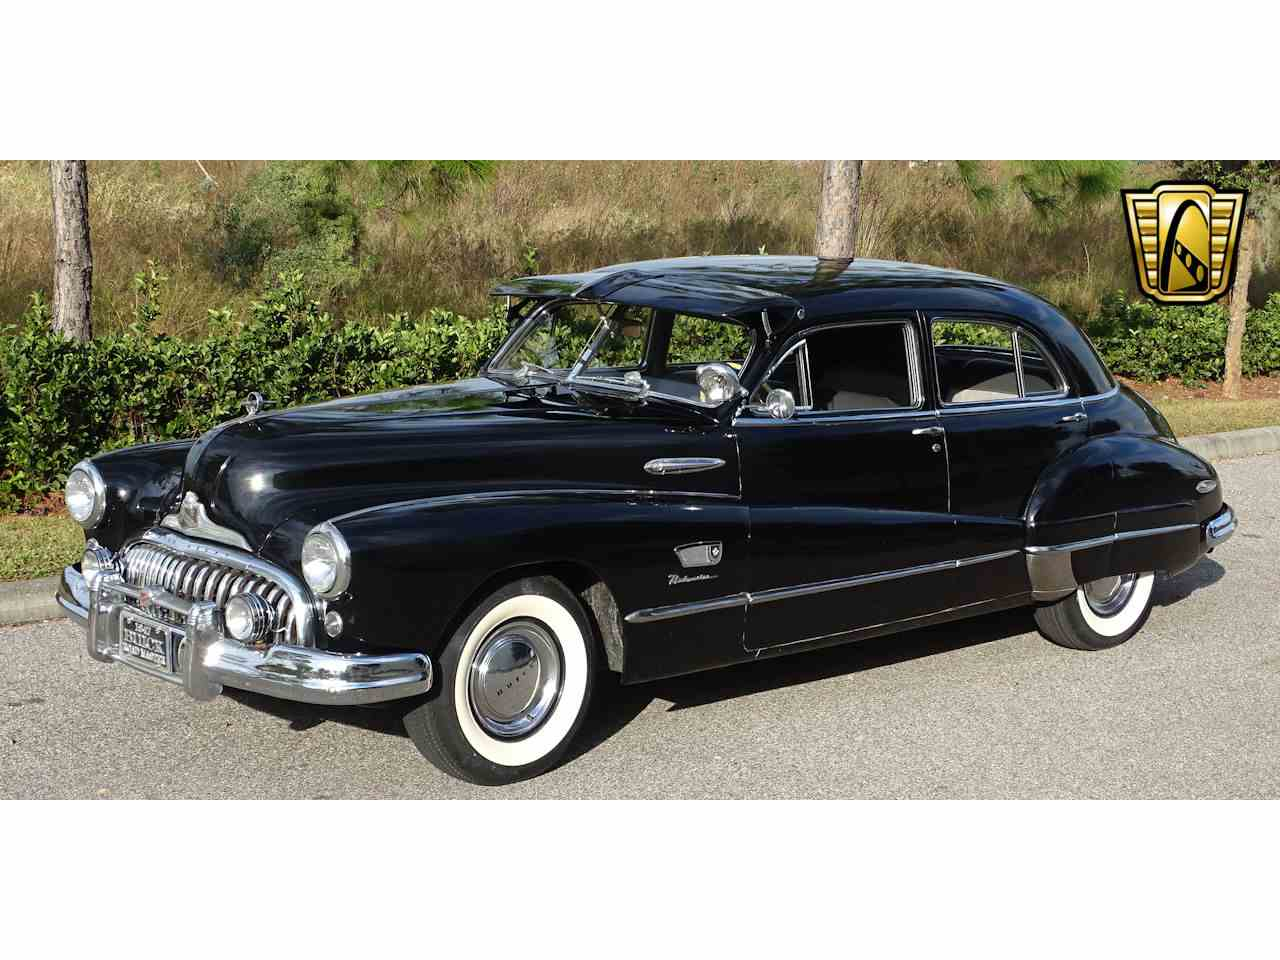 Large Picture of '47 Buick Roadmaster located in Ruskin Florida - $14,995.00 Offered by Gateway Classic Cars - Tampa - MBS8